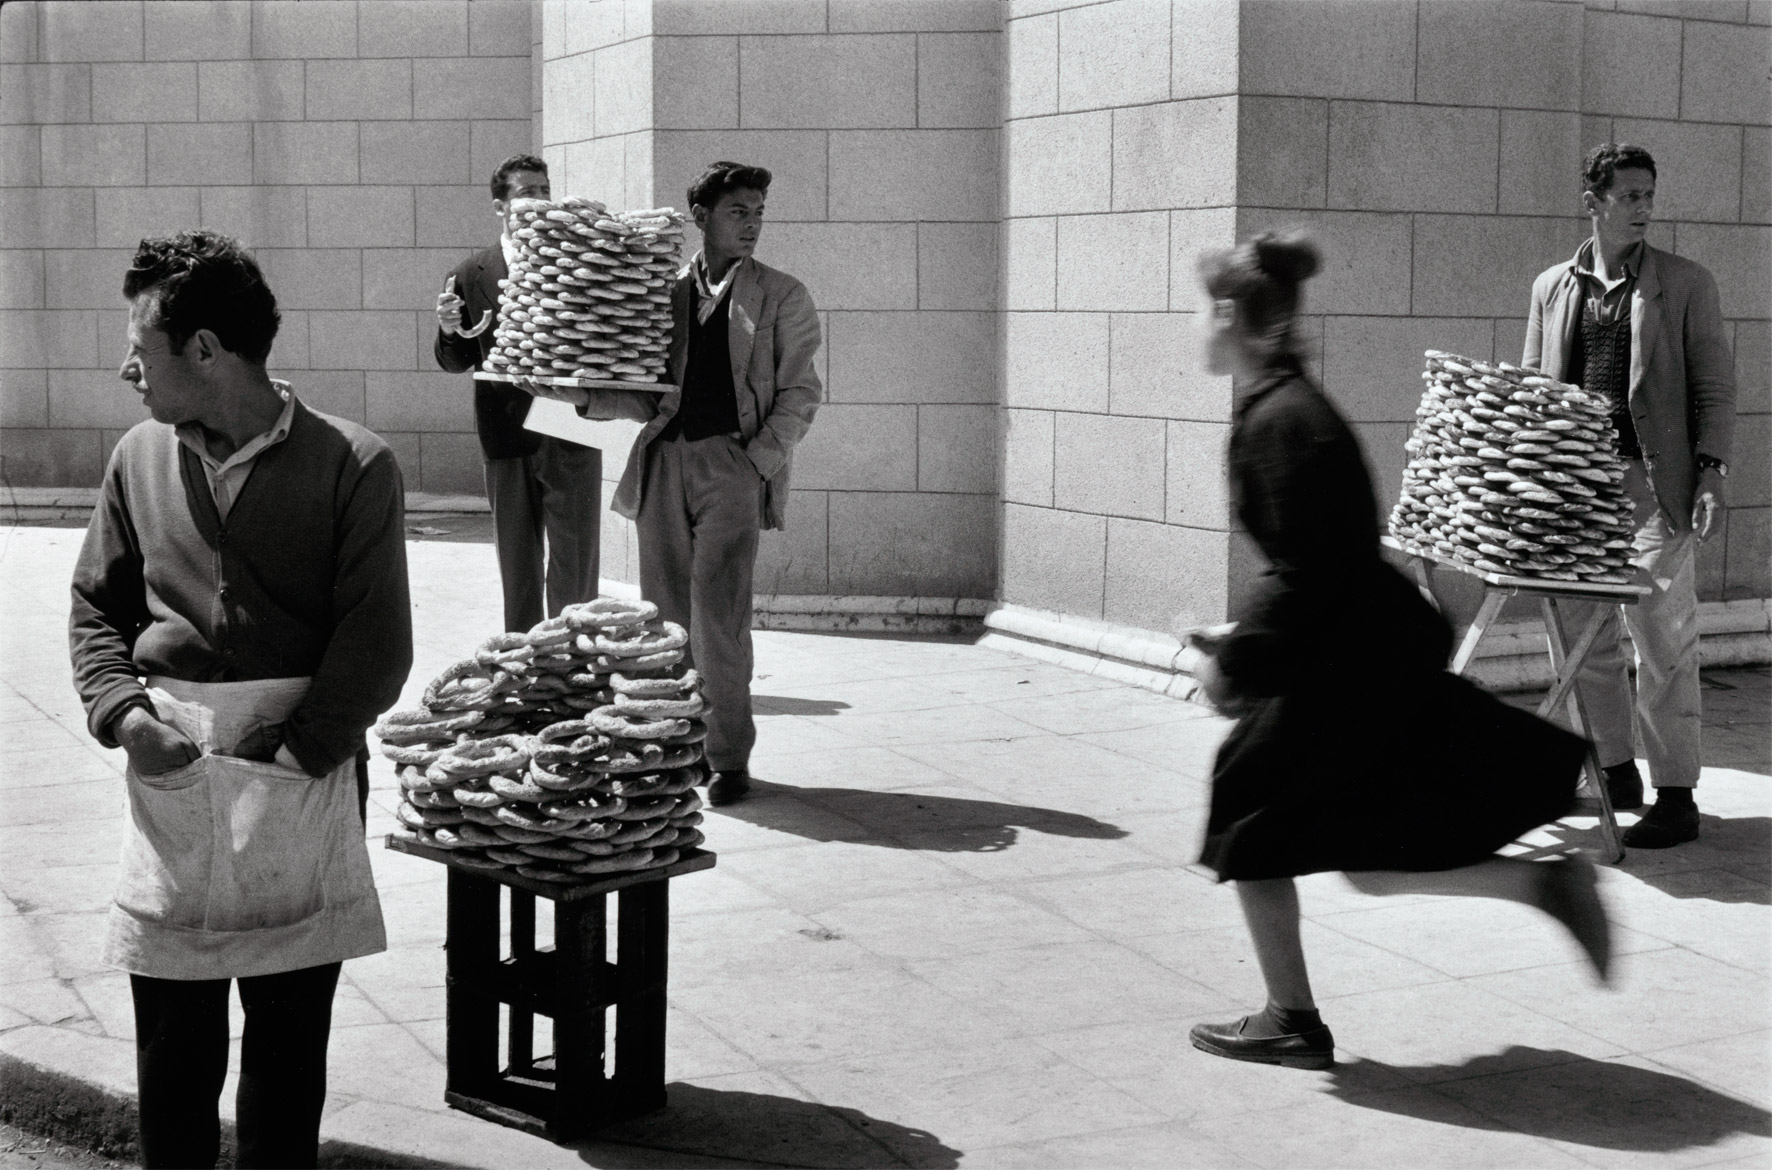 Bread sellers, Athens, Greece, 1958.